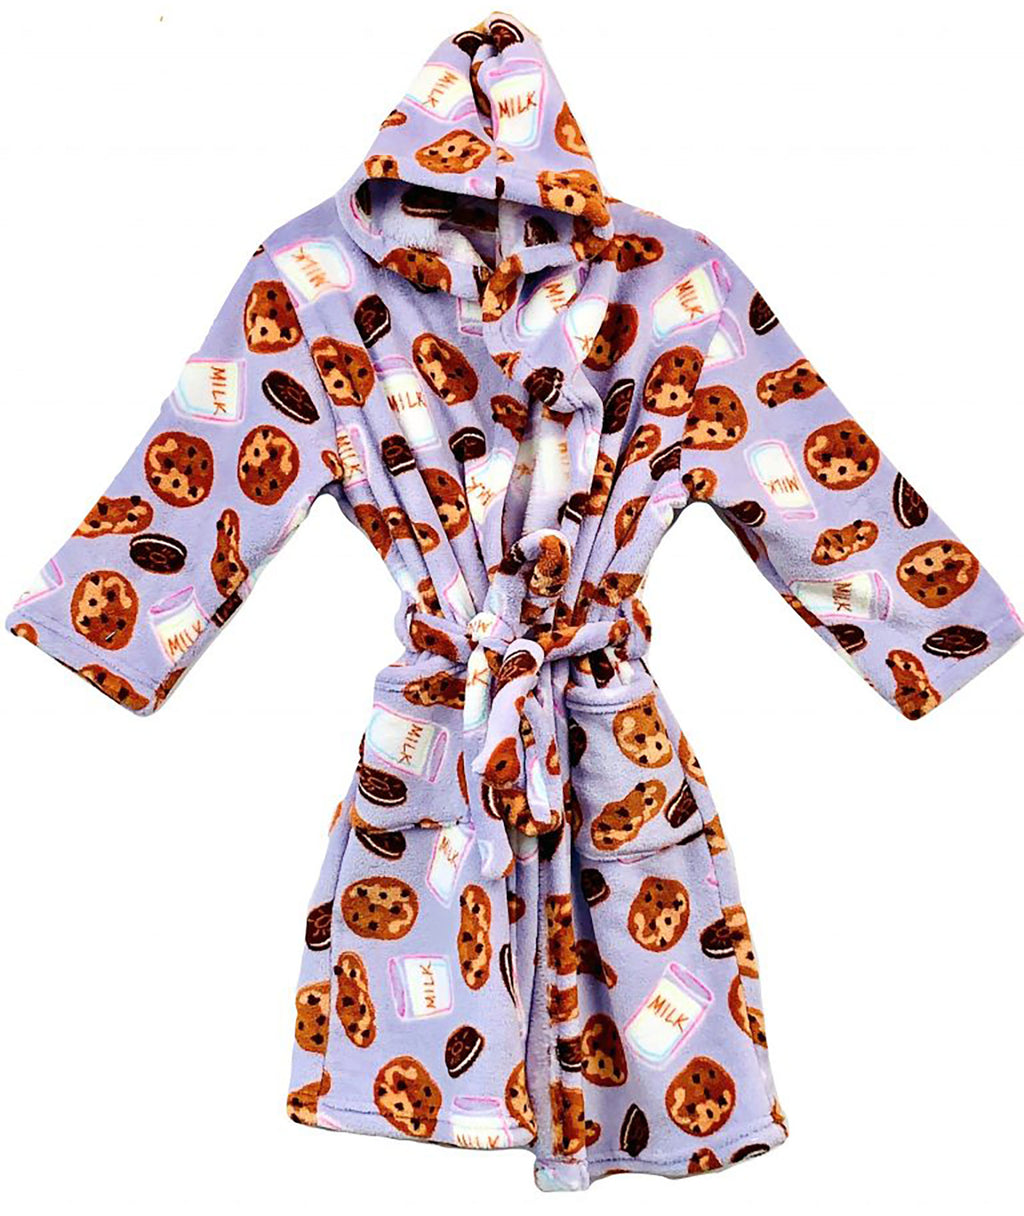 Made with Love and Kisses Milk and Cookies Robe